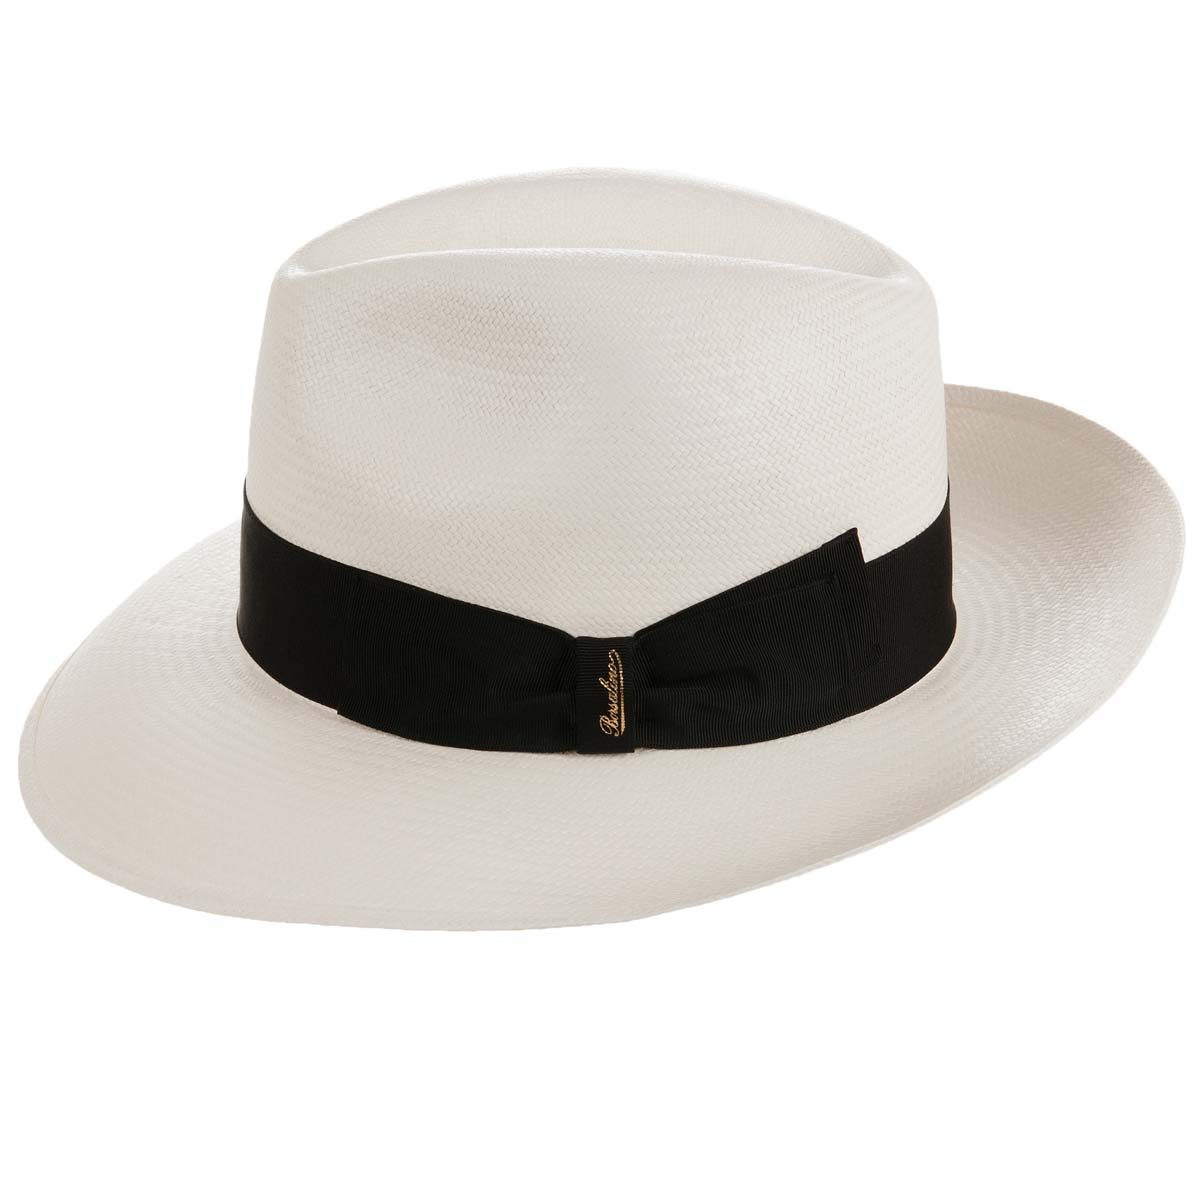 The Top Quality Panama Hat By Borsalino